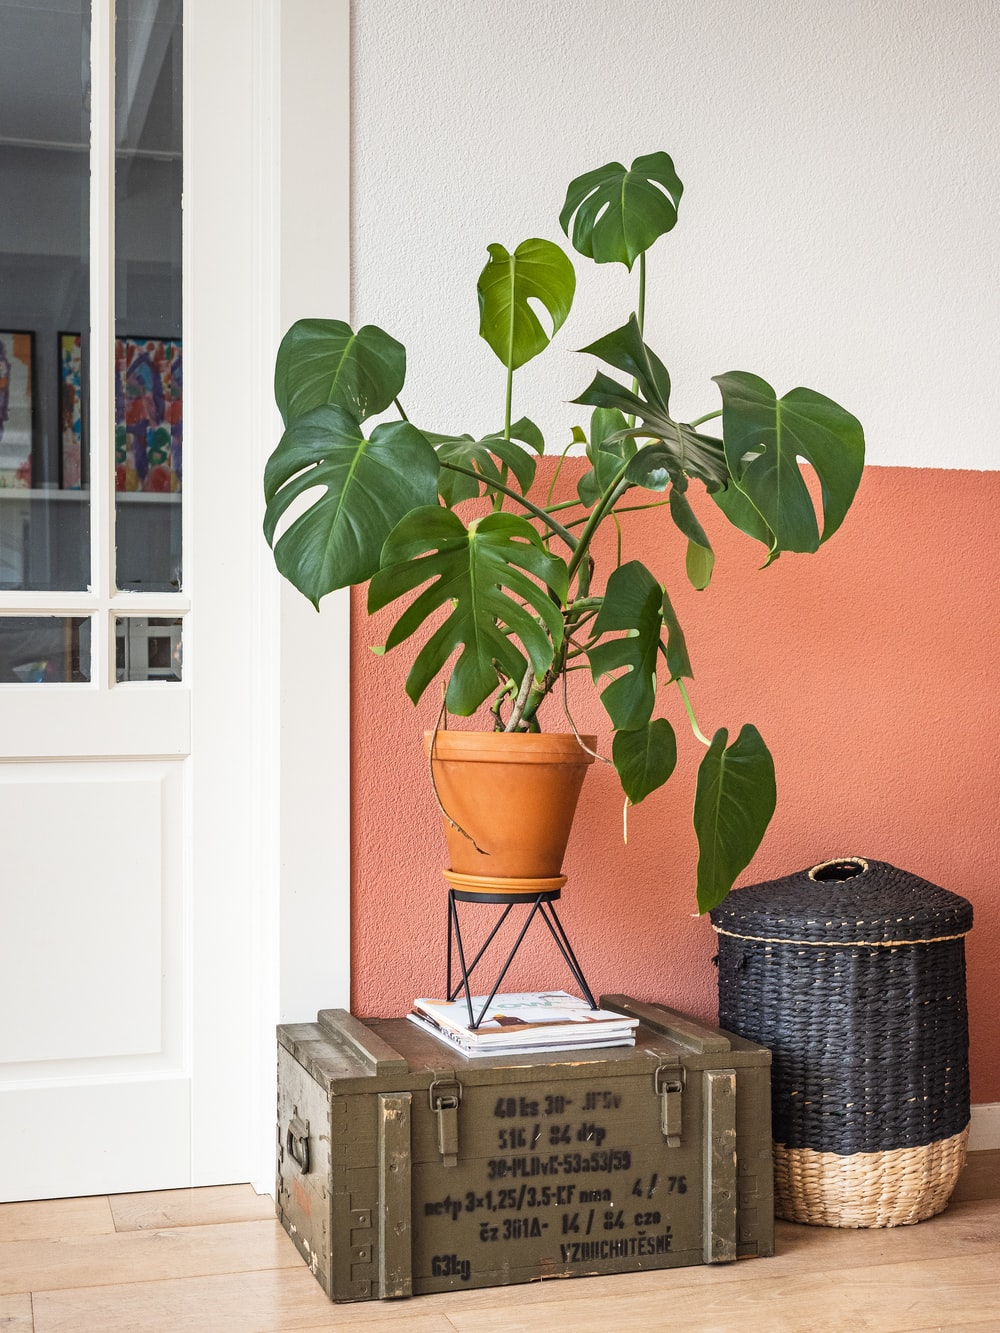 green plant on brown clay pot